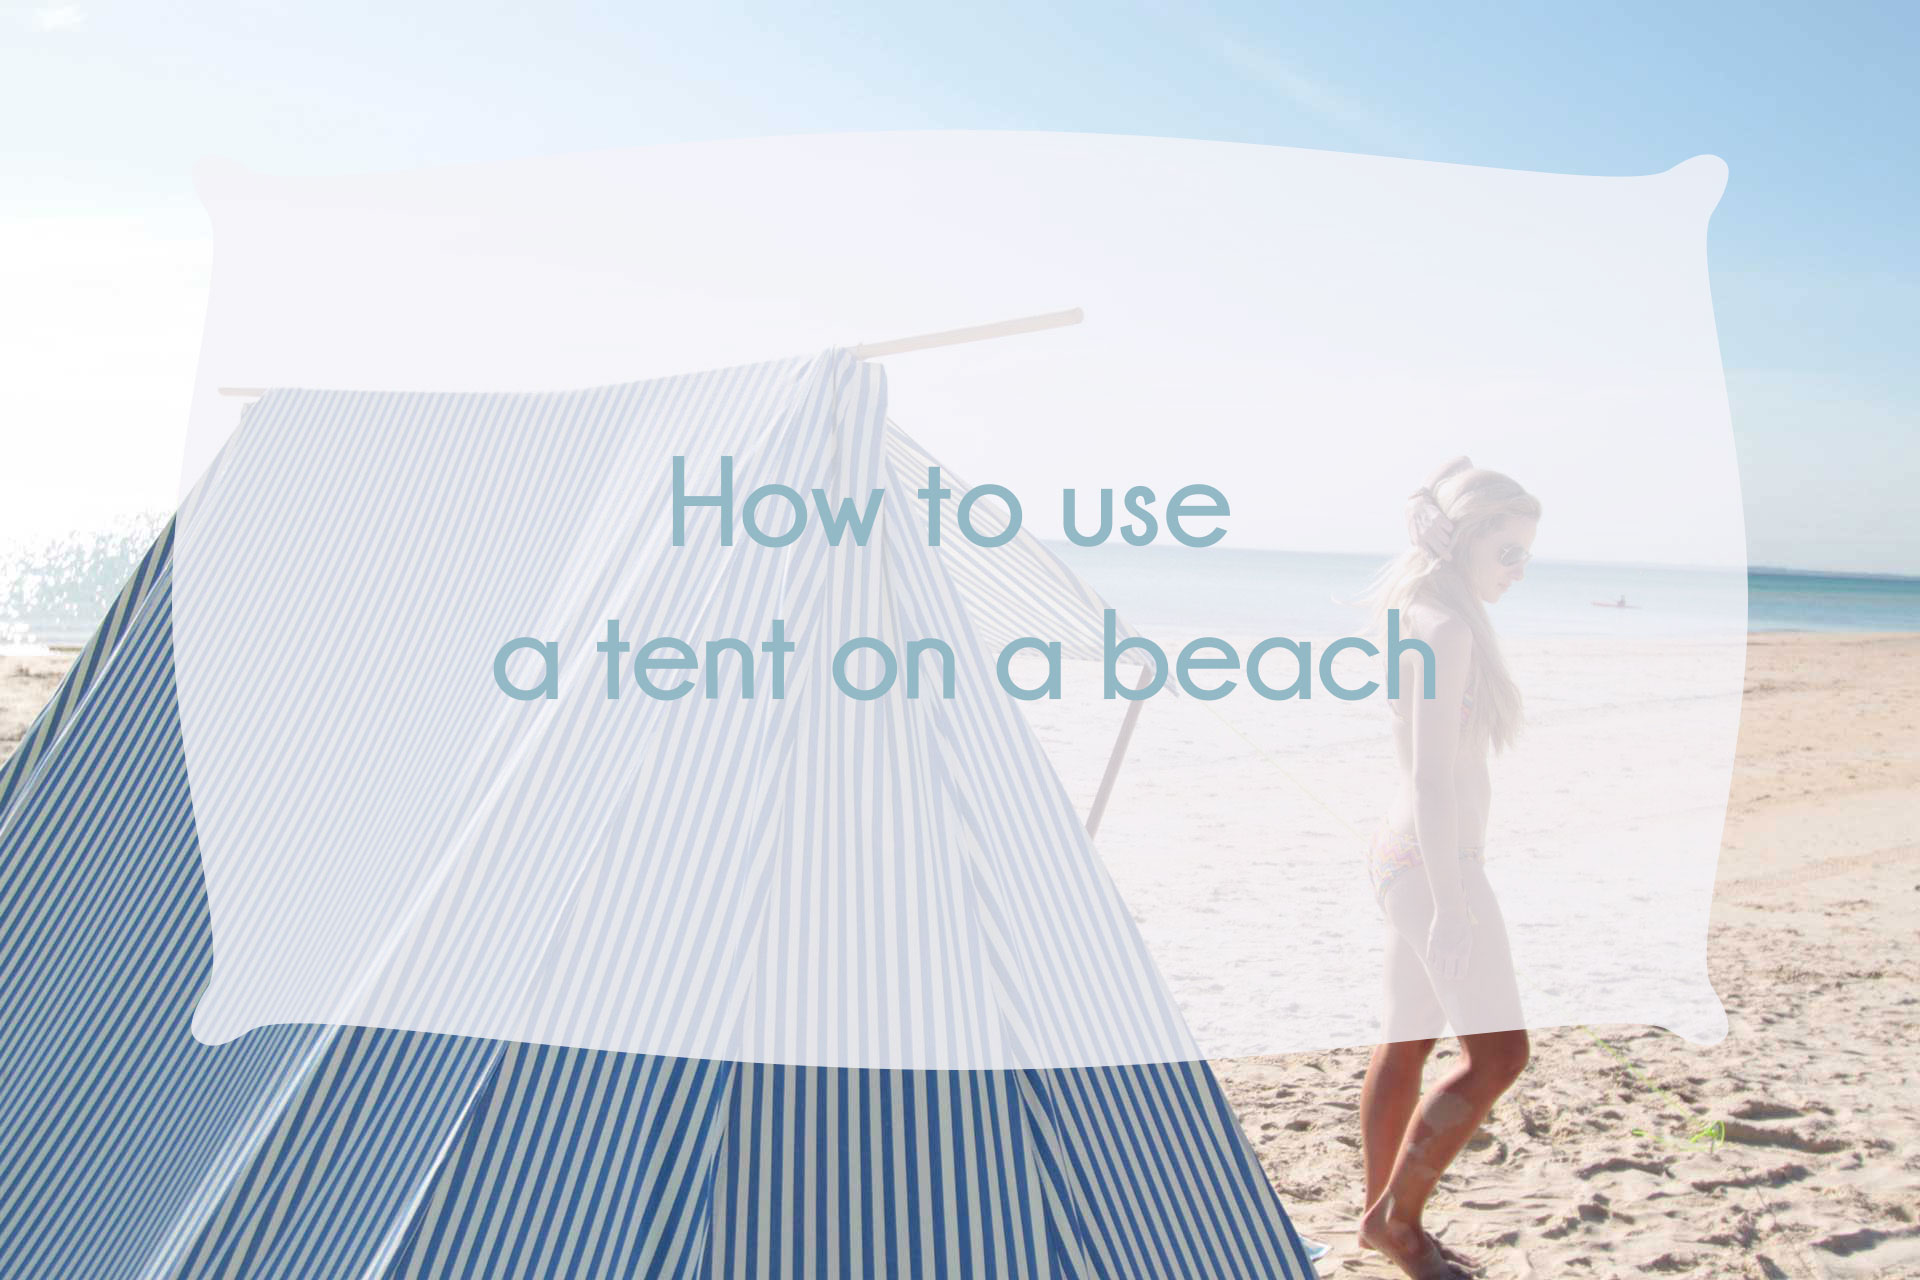 sc 1 st  Moxie Comp & How to use a tent on a beach - Moxie Comp